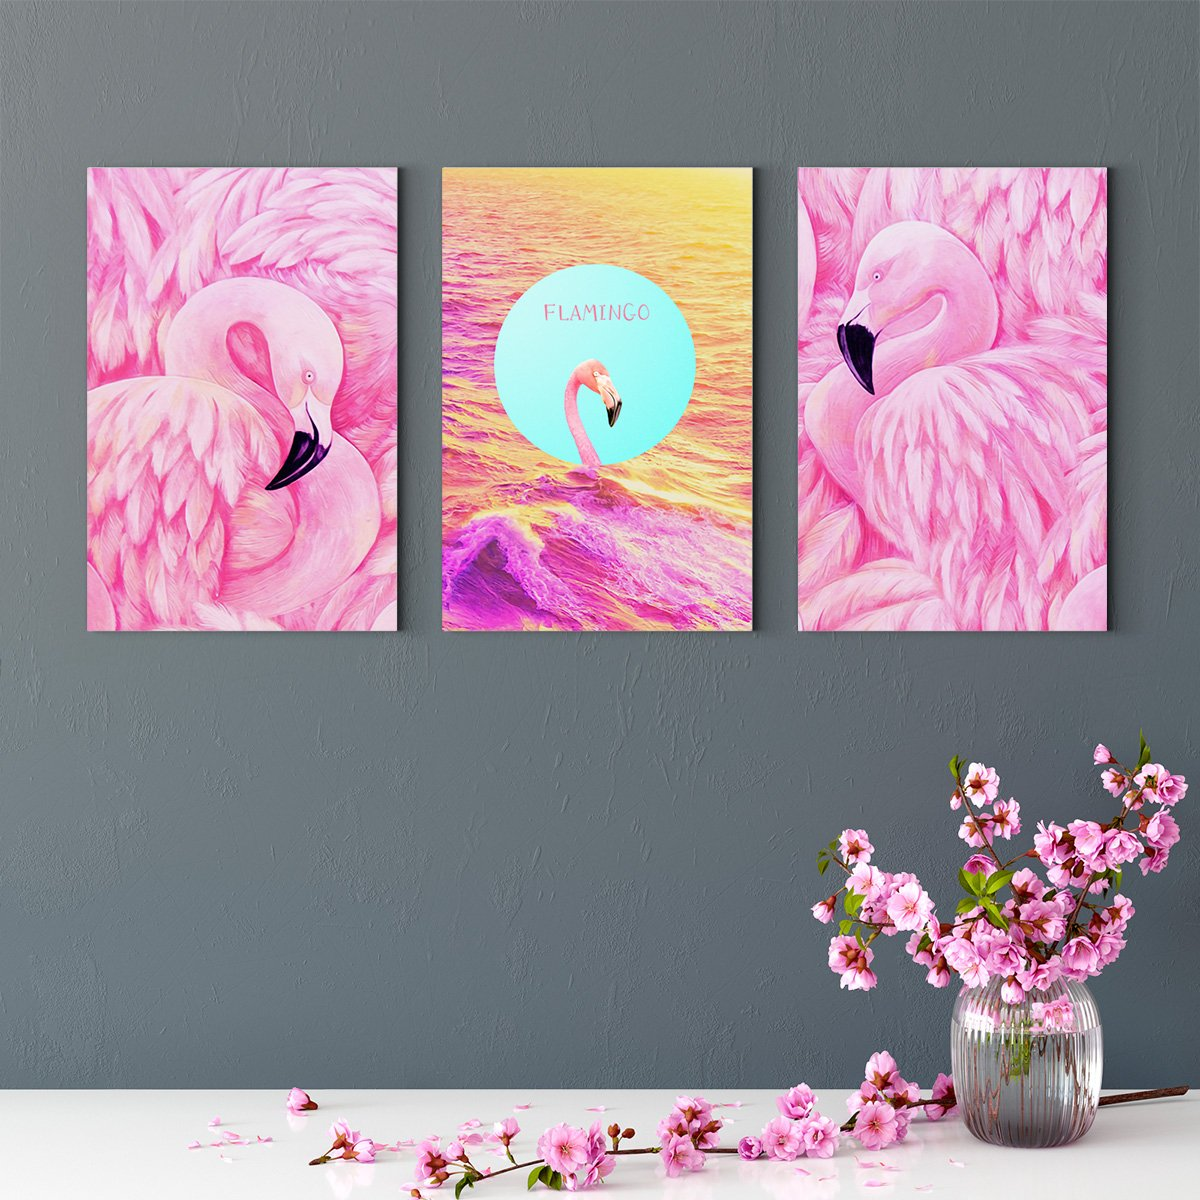 Nordic flamingo - animal decoration painting for living room